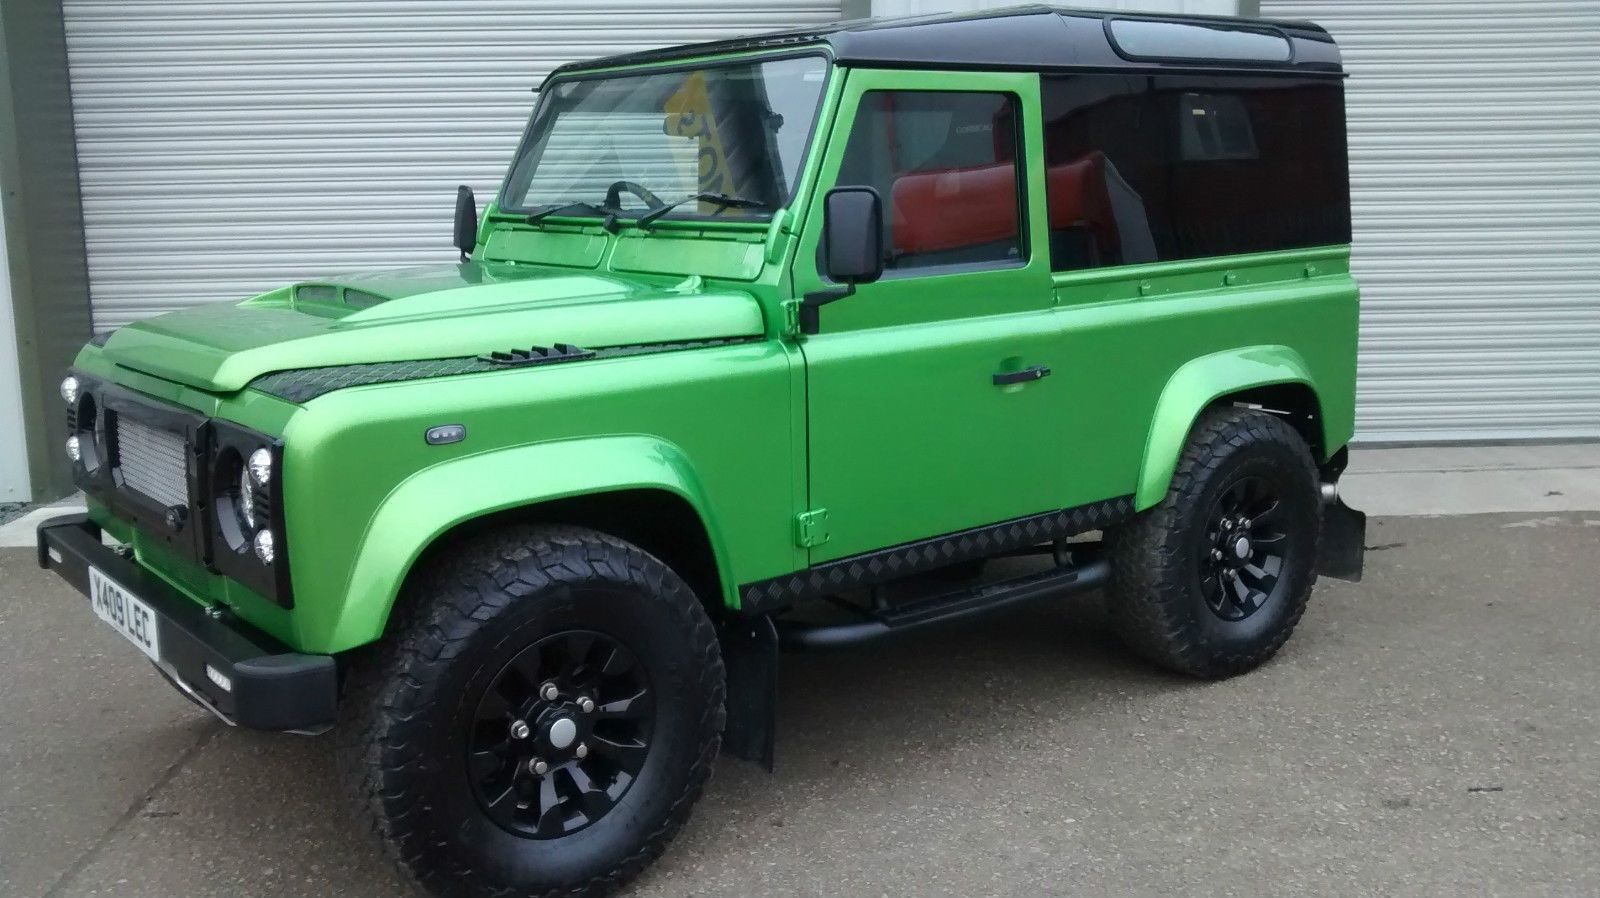 CUSTOM DEFENDER 90 GREEN CANDY MIVE SPEC PANORAMIC HARD TOP ...